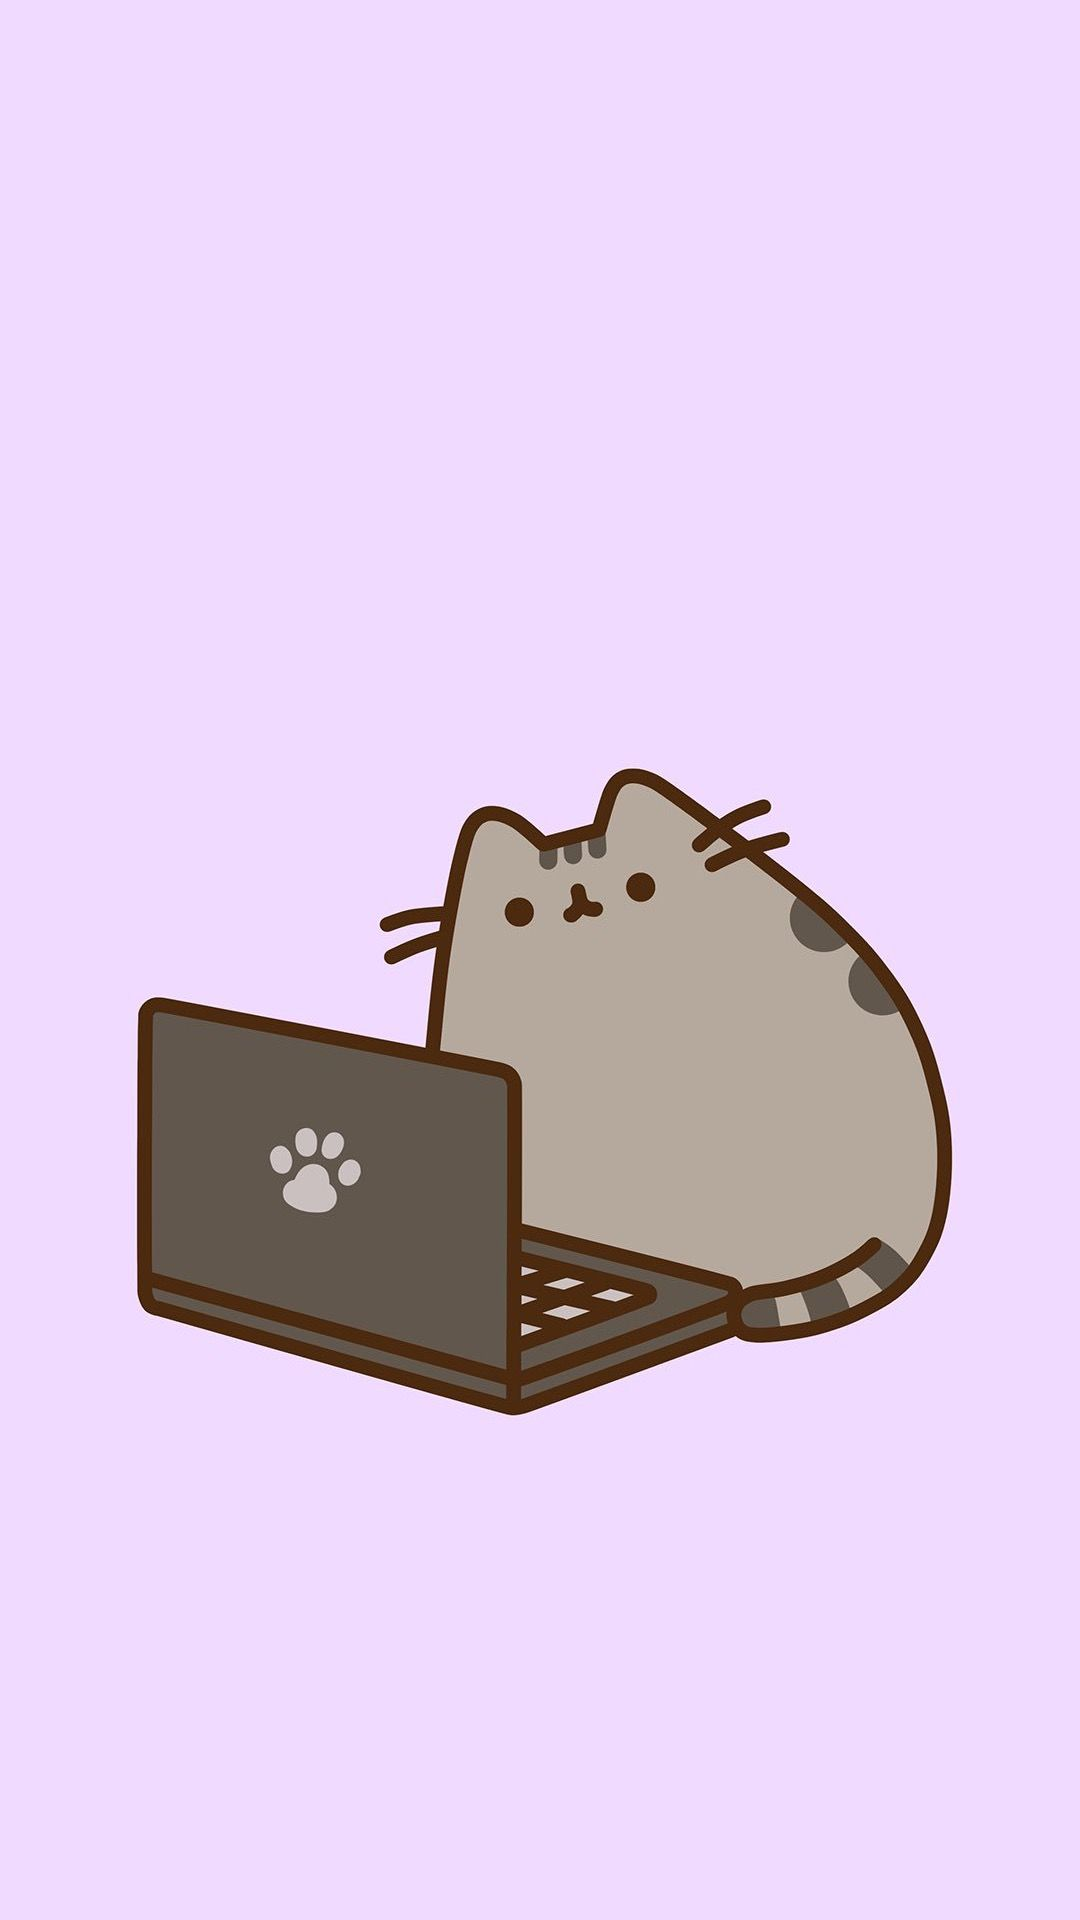 Pusheen At Computer Wallpaper!!! 💕 Pusheen cat, Pusheen